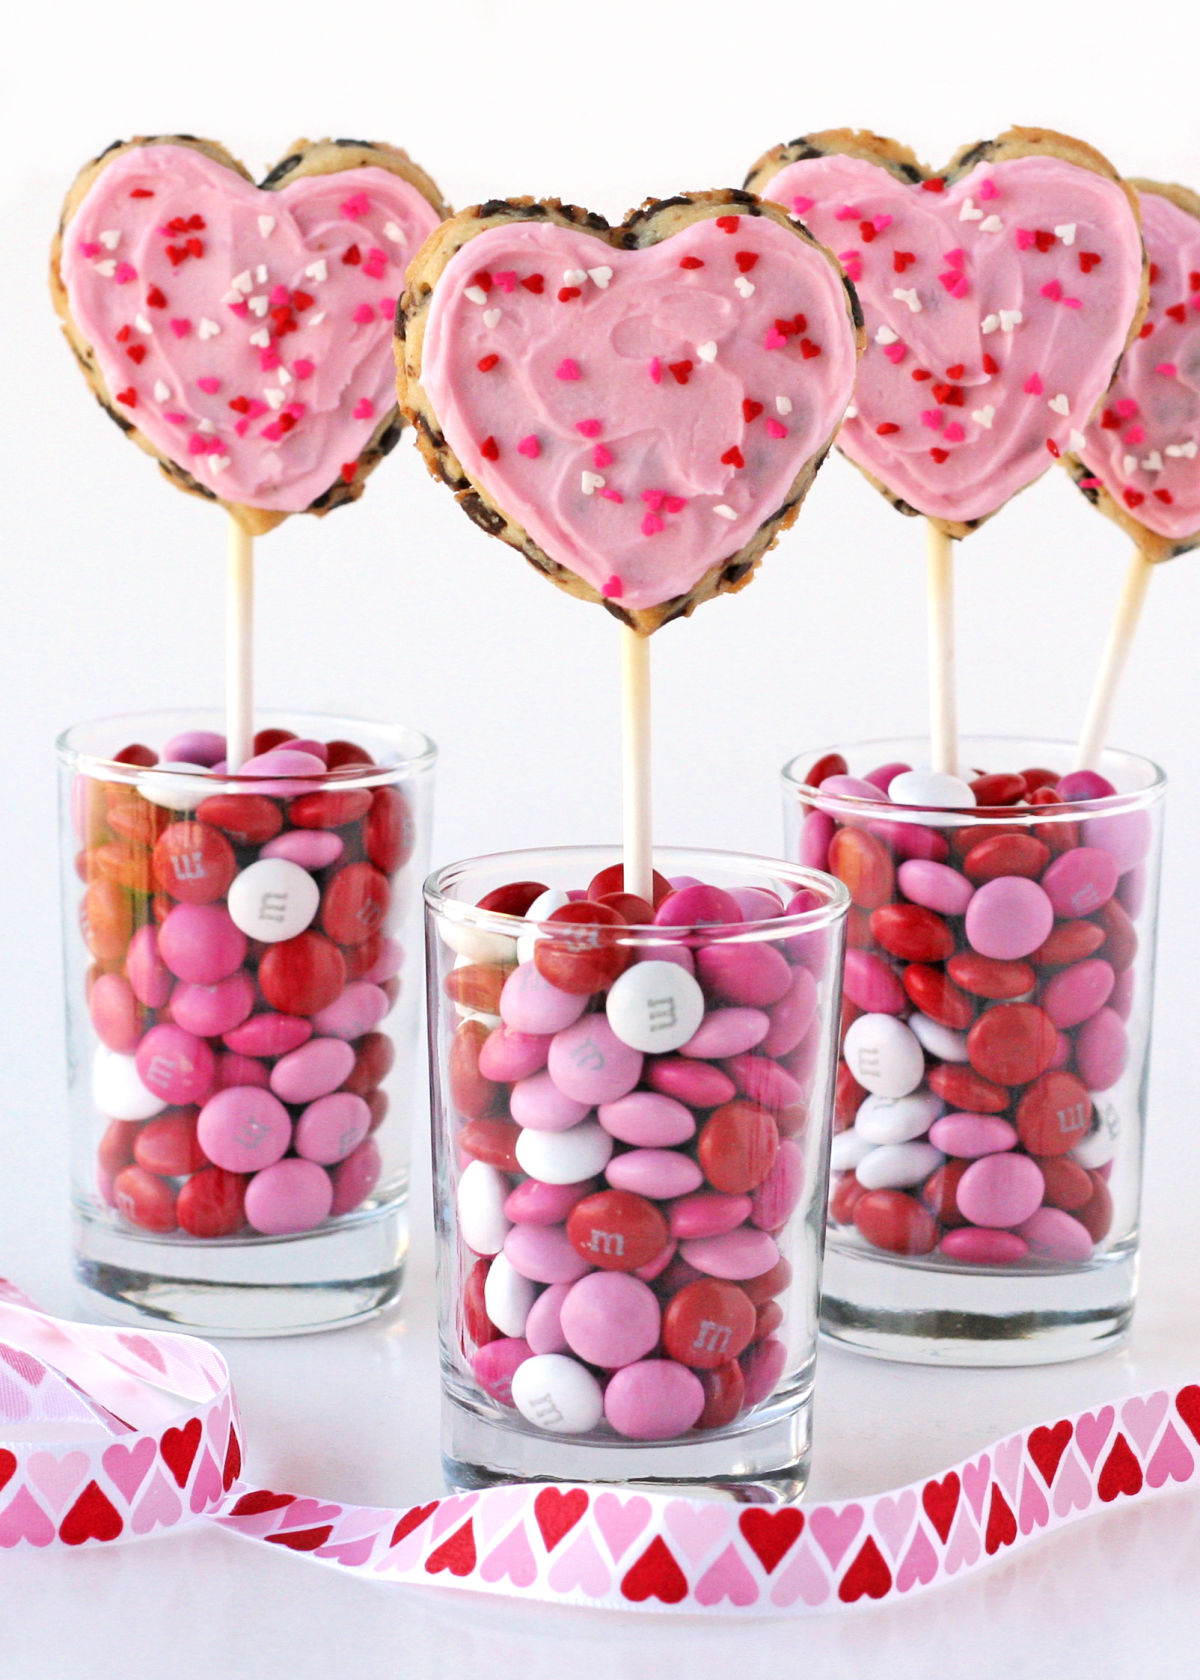 heart shaped chocolate chip cookies on sticks in cups with candy